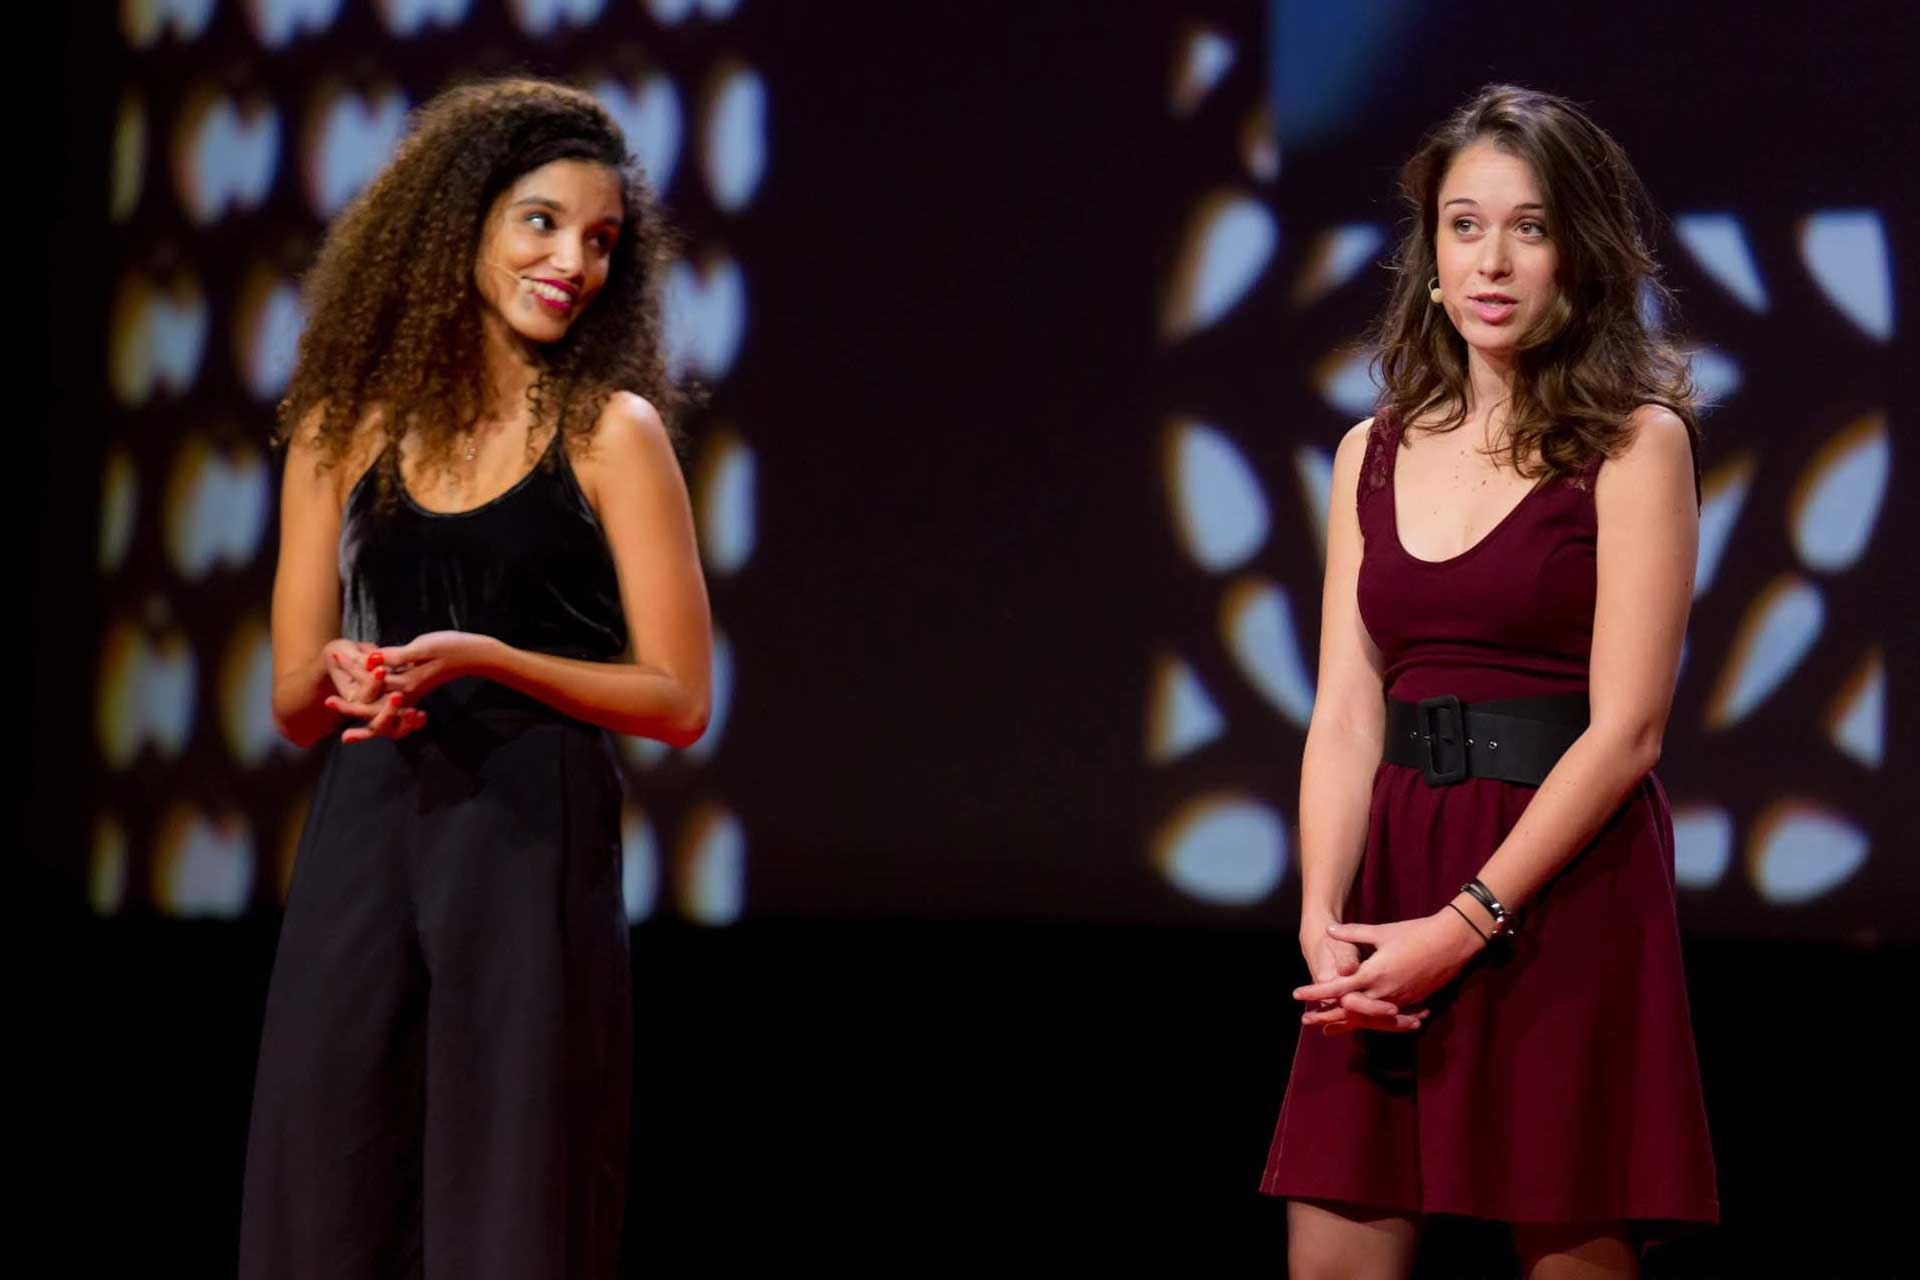 conference-TEDxParis-2015-5.jpg